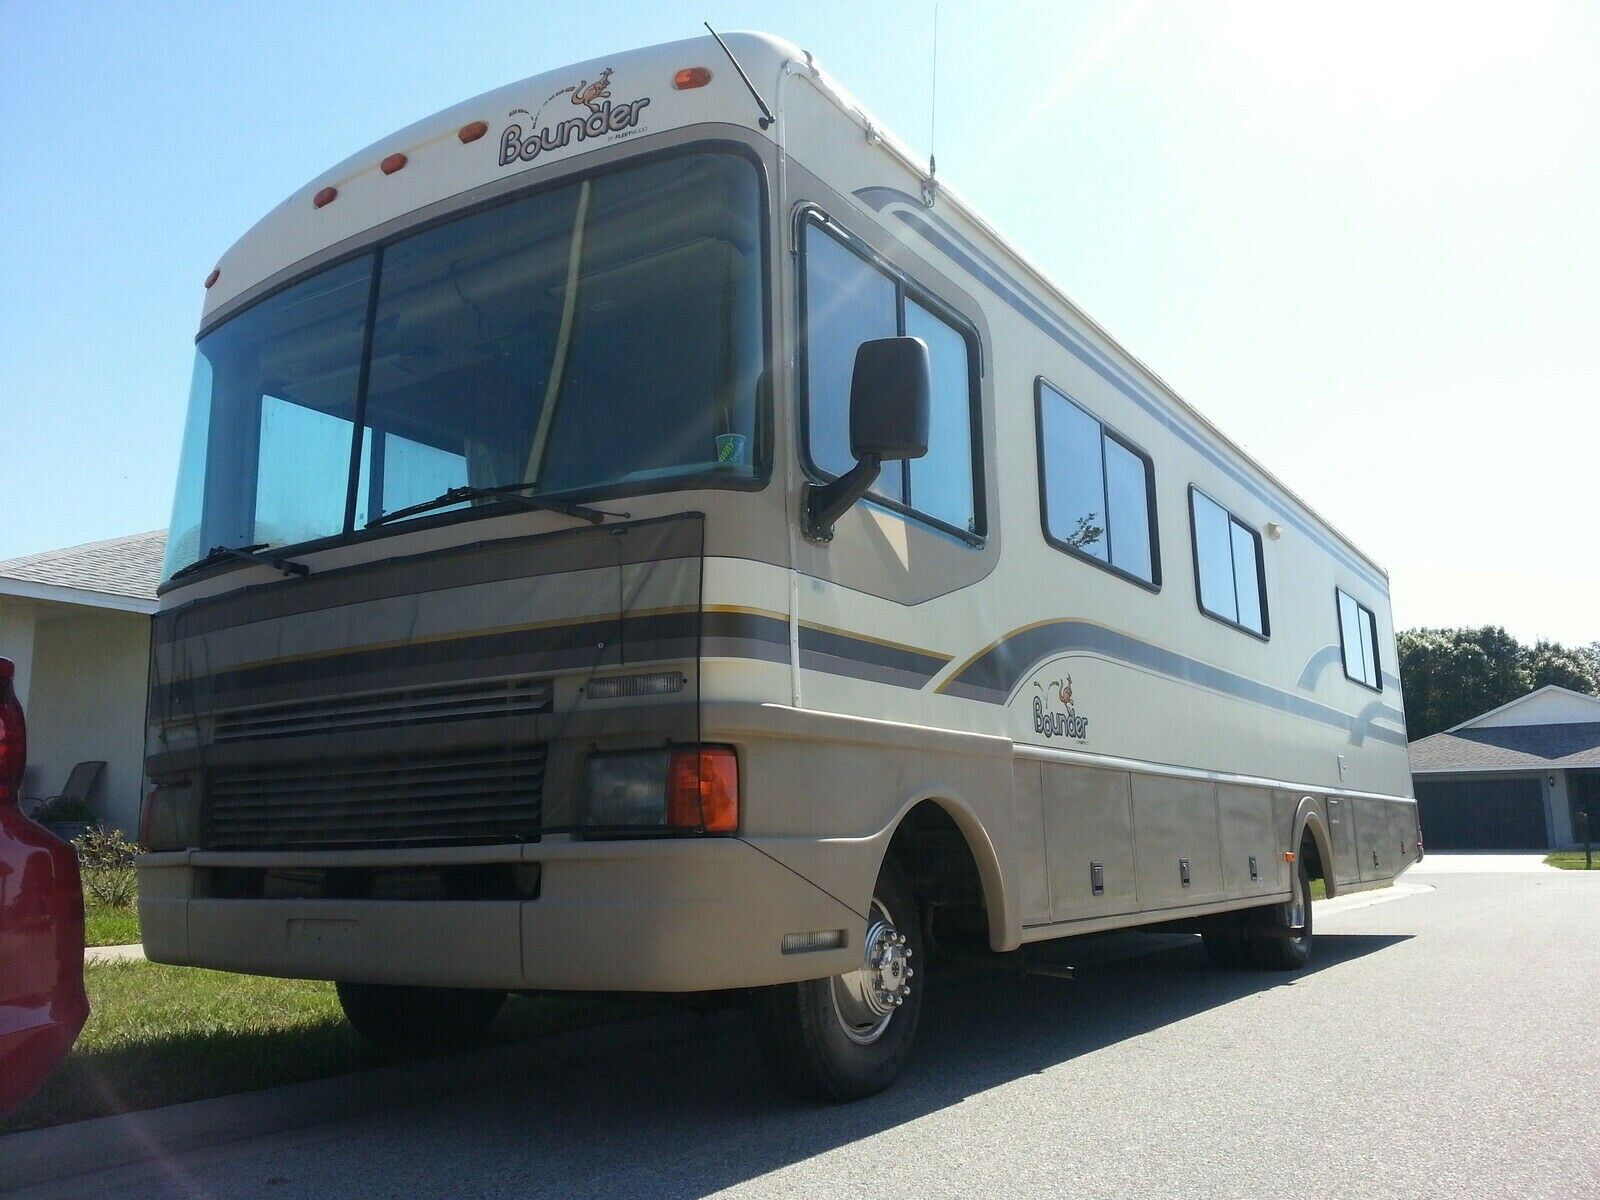 Class A Fleetwood Bounder RV 32 ft. 1997 low miles